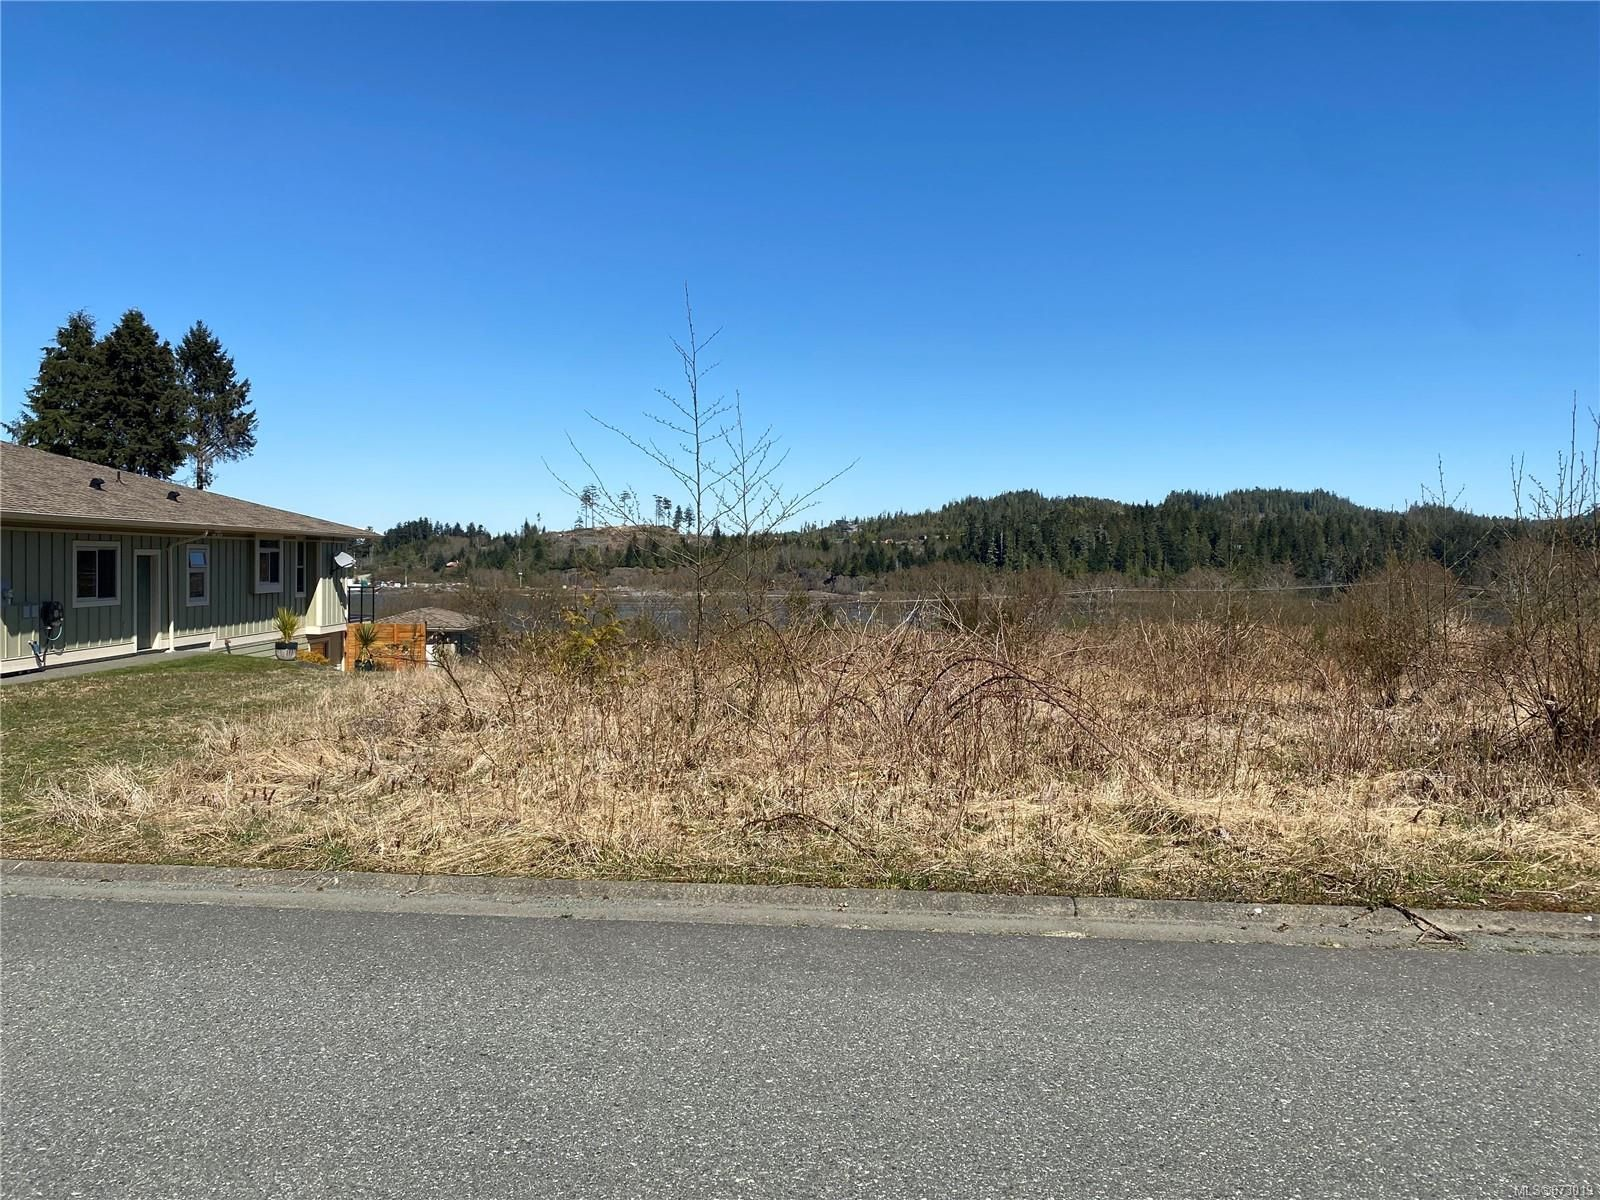 Main Photo: 6265 Hunt St in : NI Port Hardy Land for sale (North Island)  : MLS®# 873019